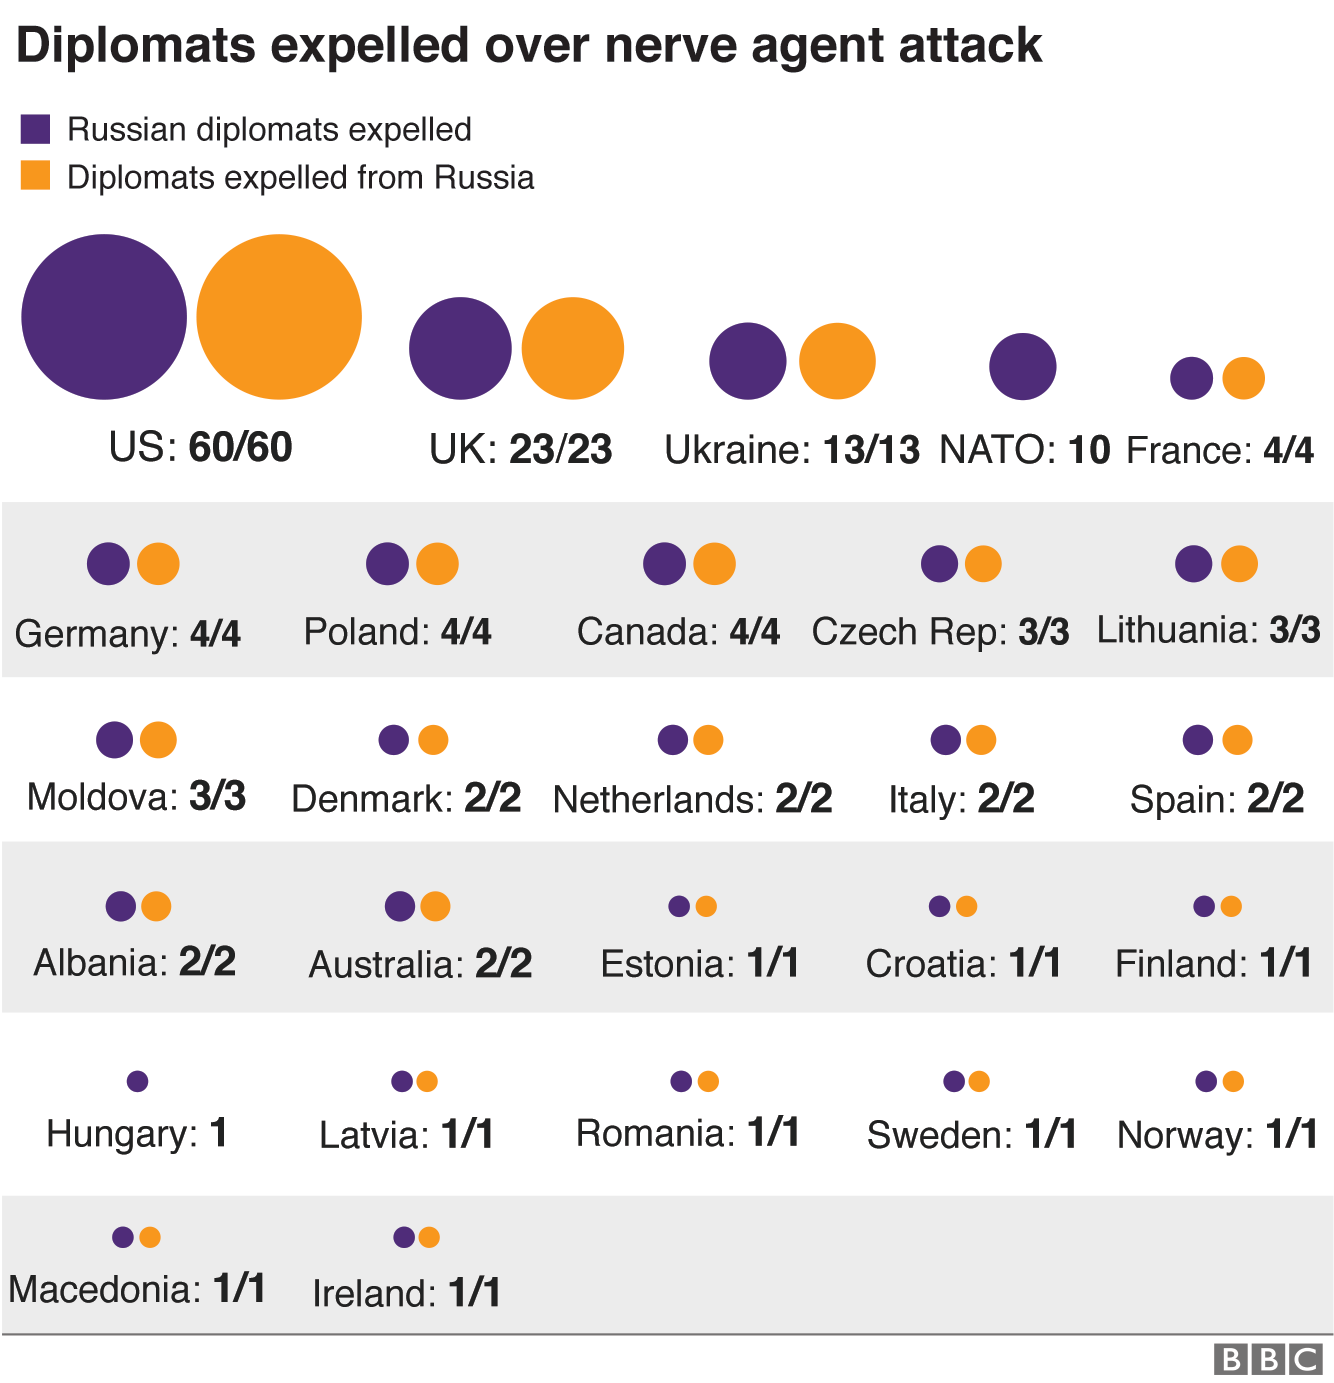 Graphic showing diplomats expelled over nerve agent attack